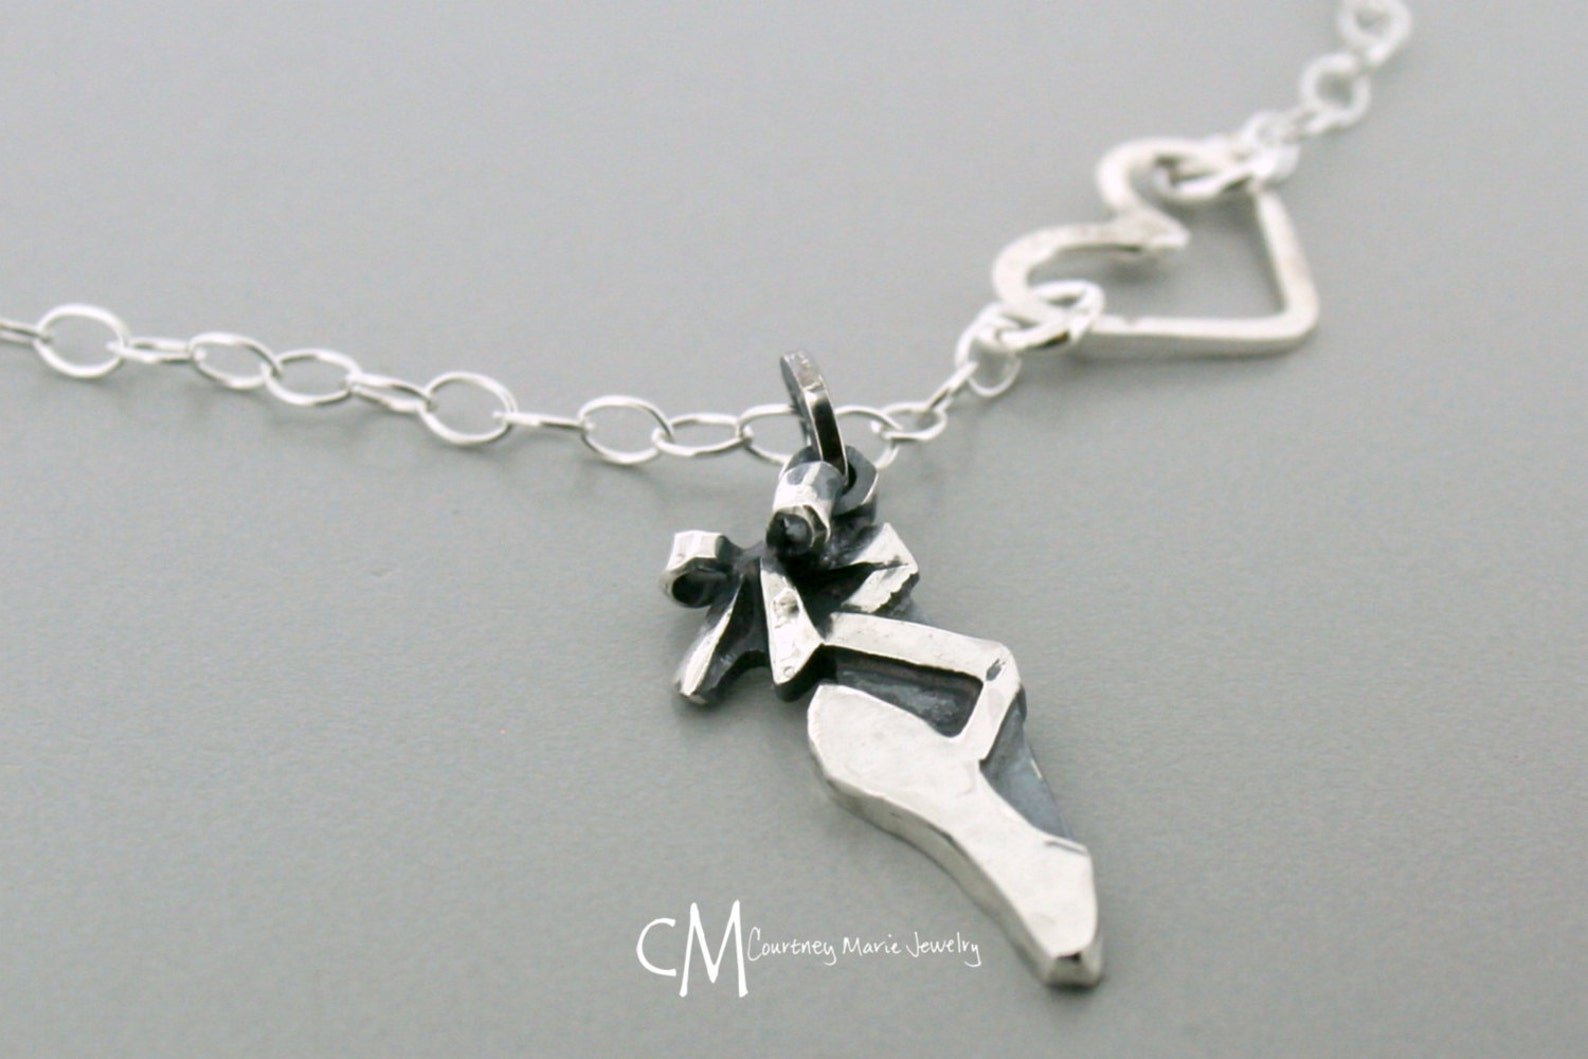 ballet shoe - pointe shoe charm - dance jewelry - ballet charm - gift for dancer - ballet charm - ballerina gift - sterling silv